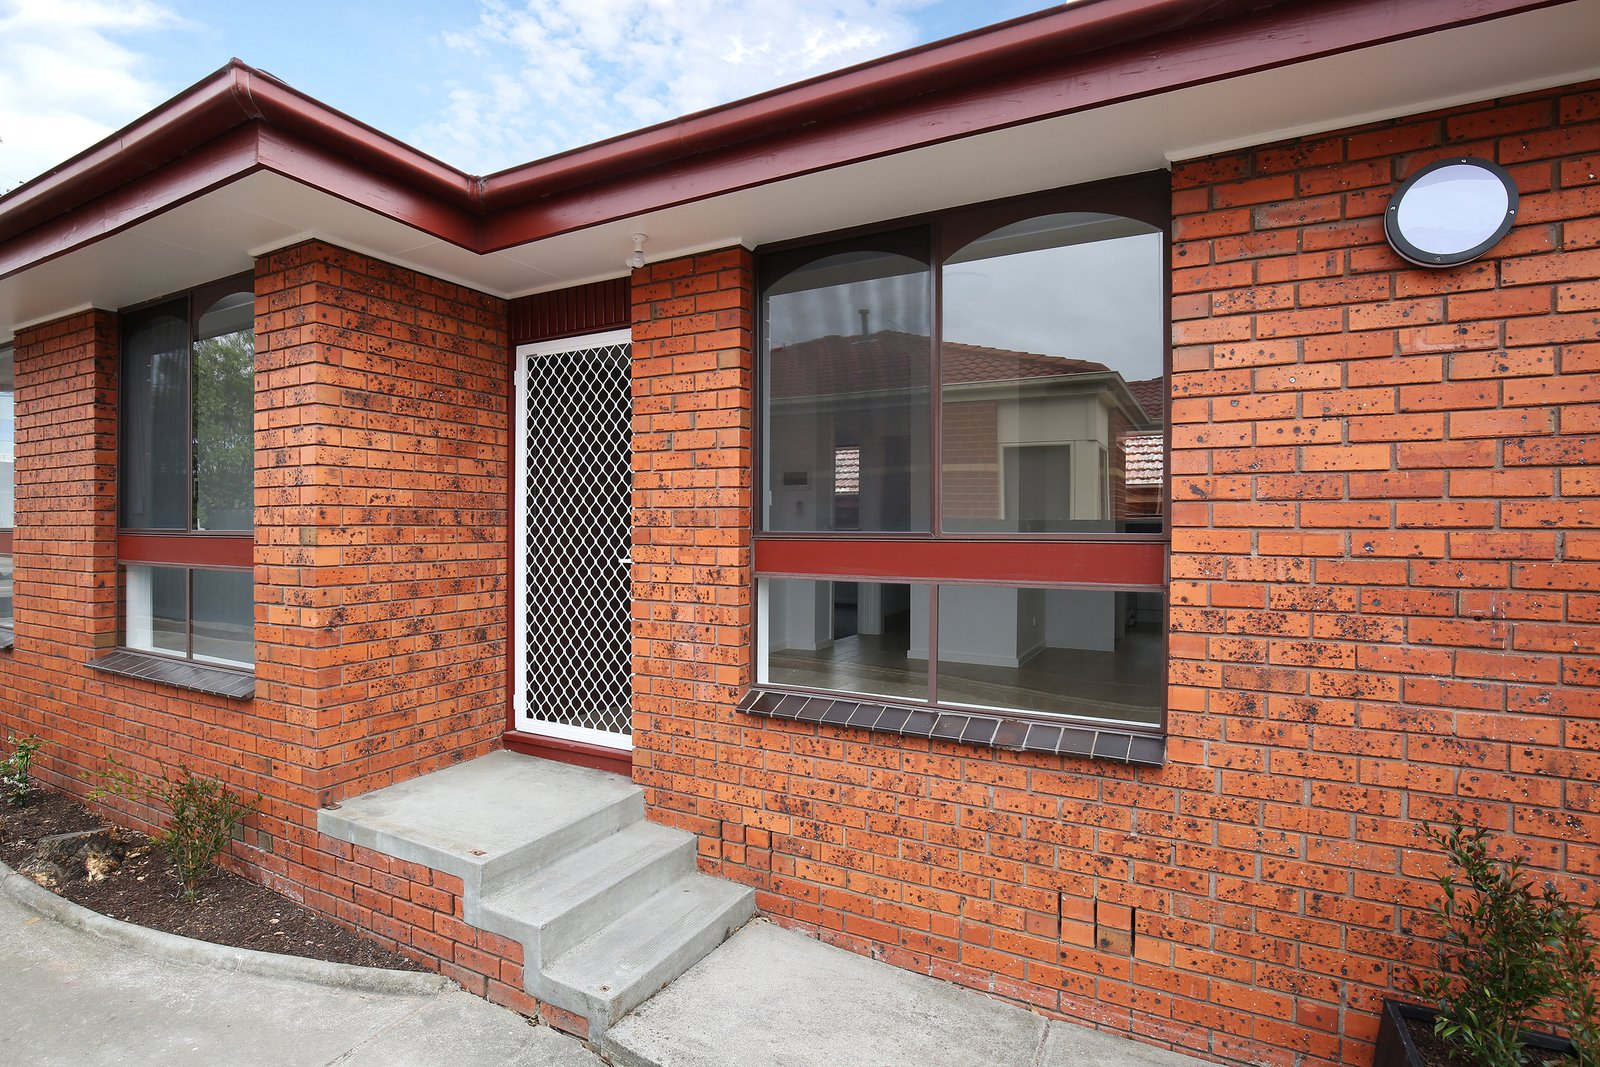 2/178 Melville Road, Brunswick West, VIC, 3055 image 1